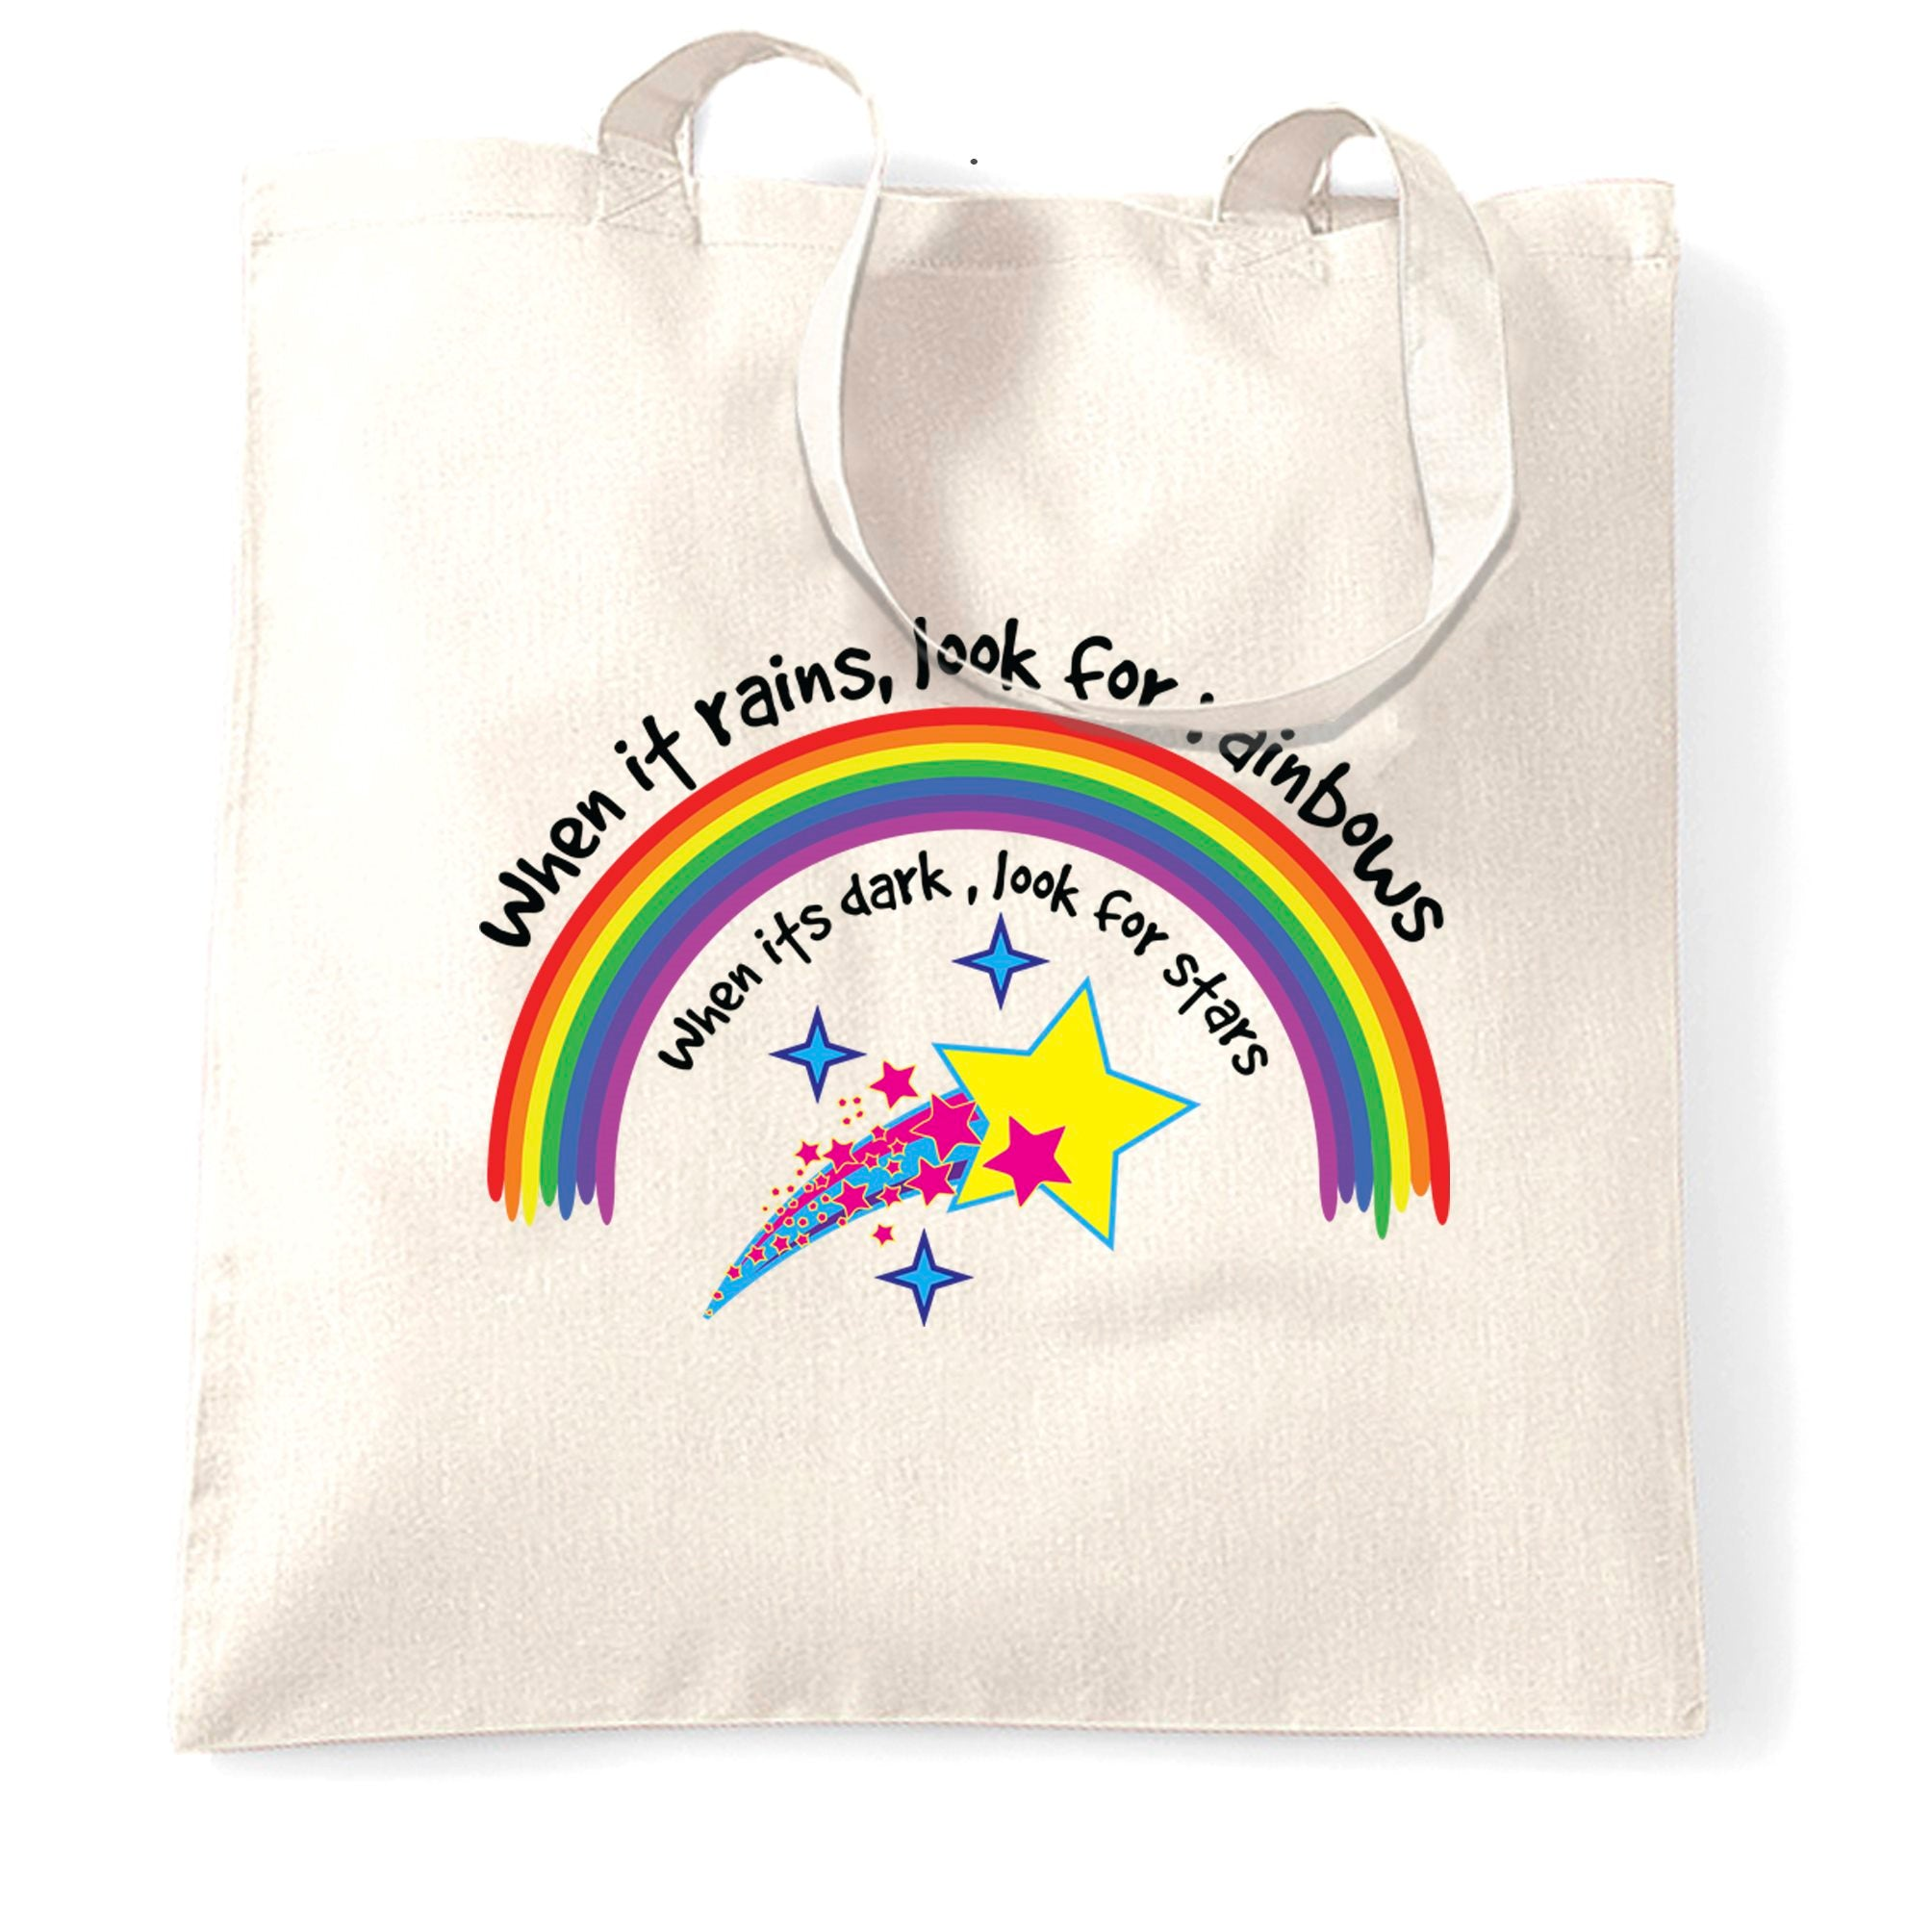 Inspirational Tote Bag When It Rains, Look For Rainbows